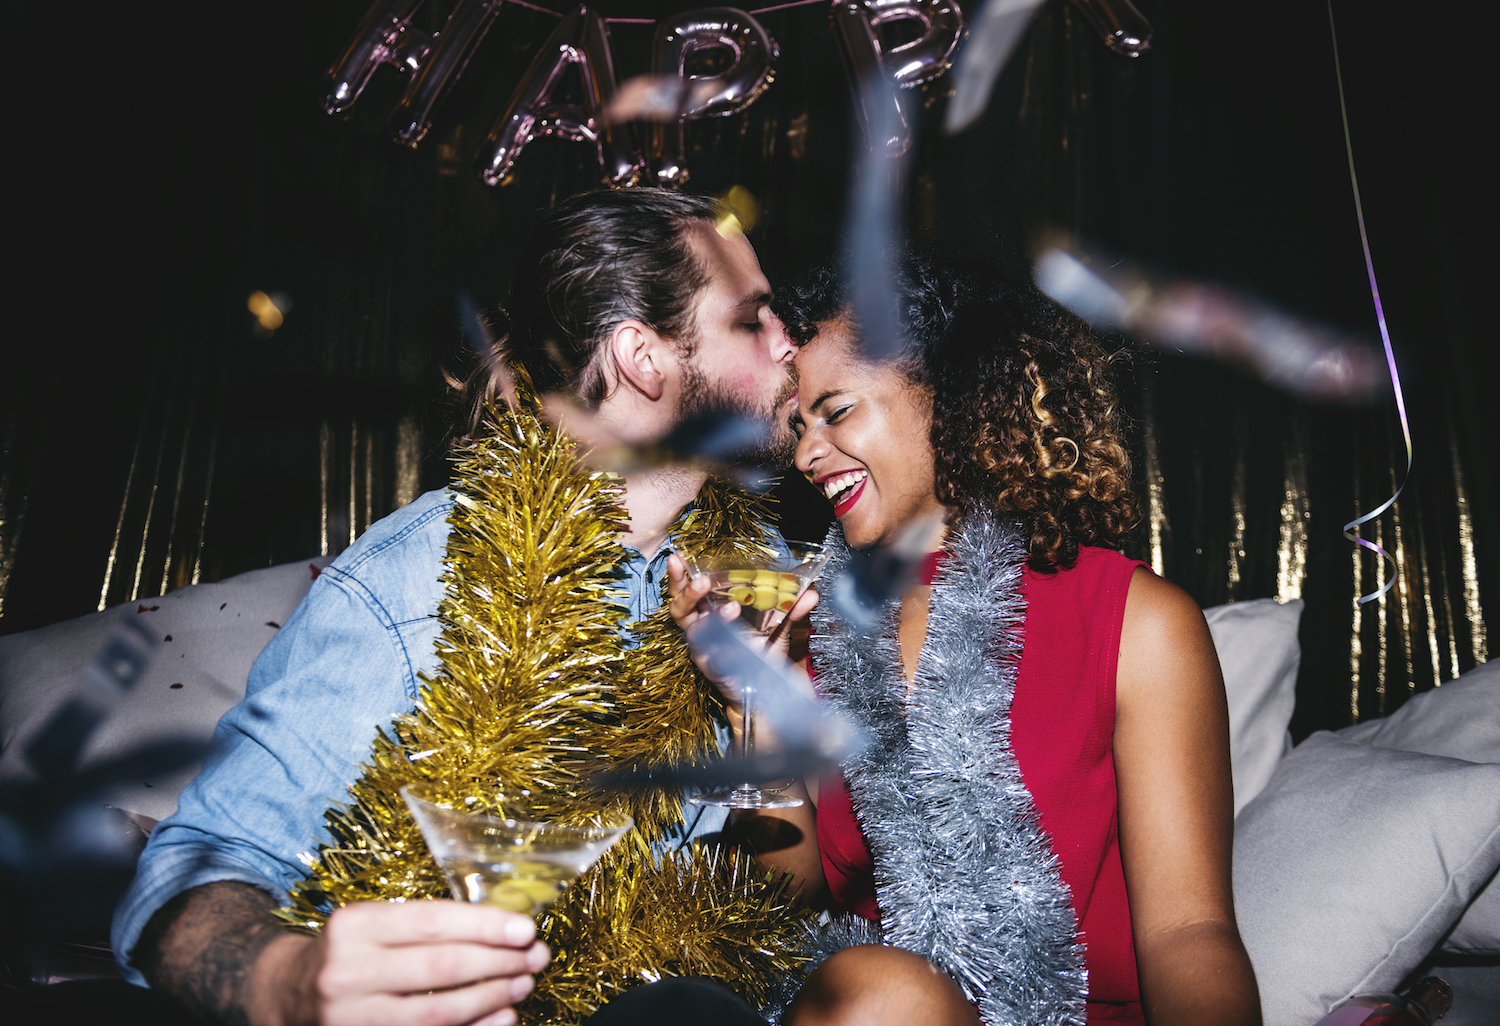 couple celebrating Charleston New Year's Eve